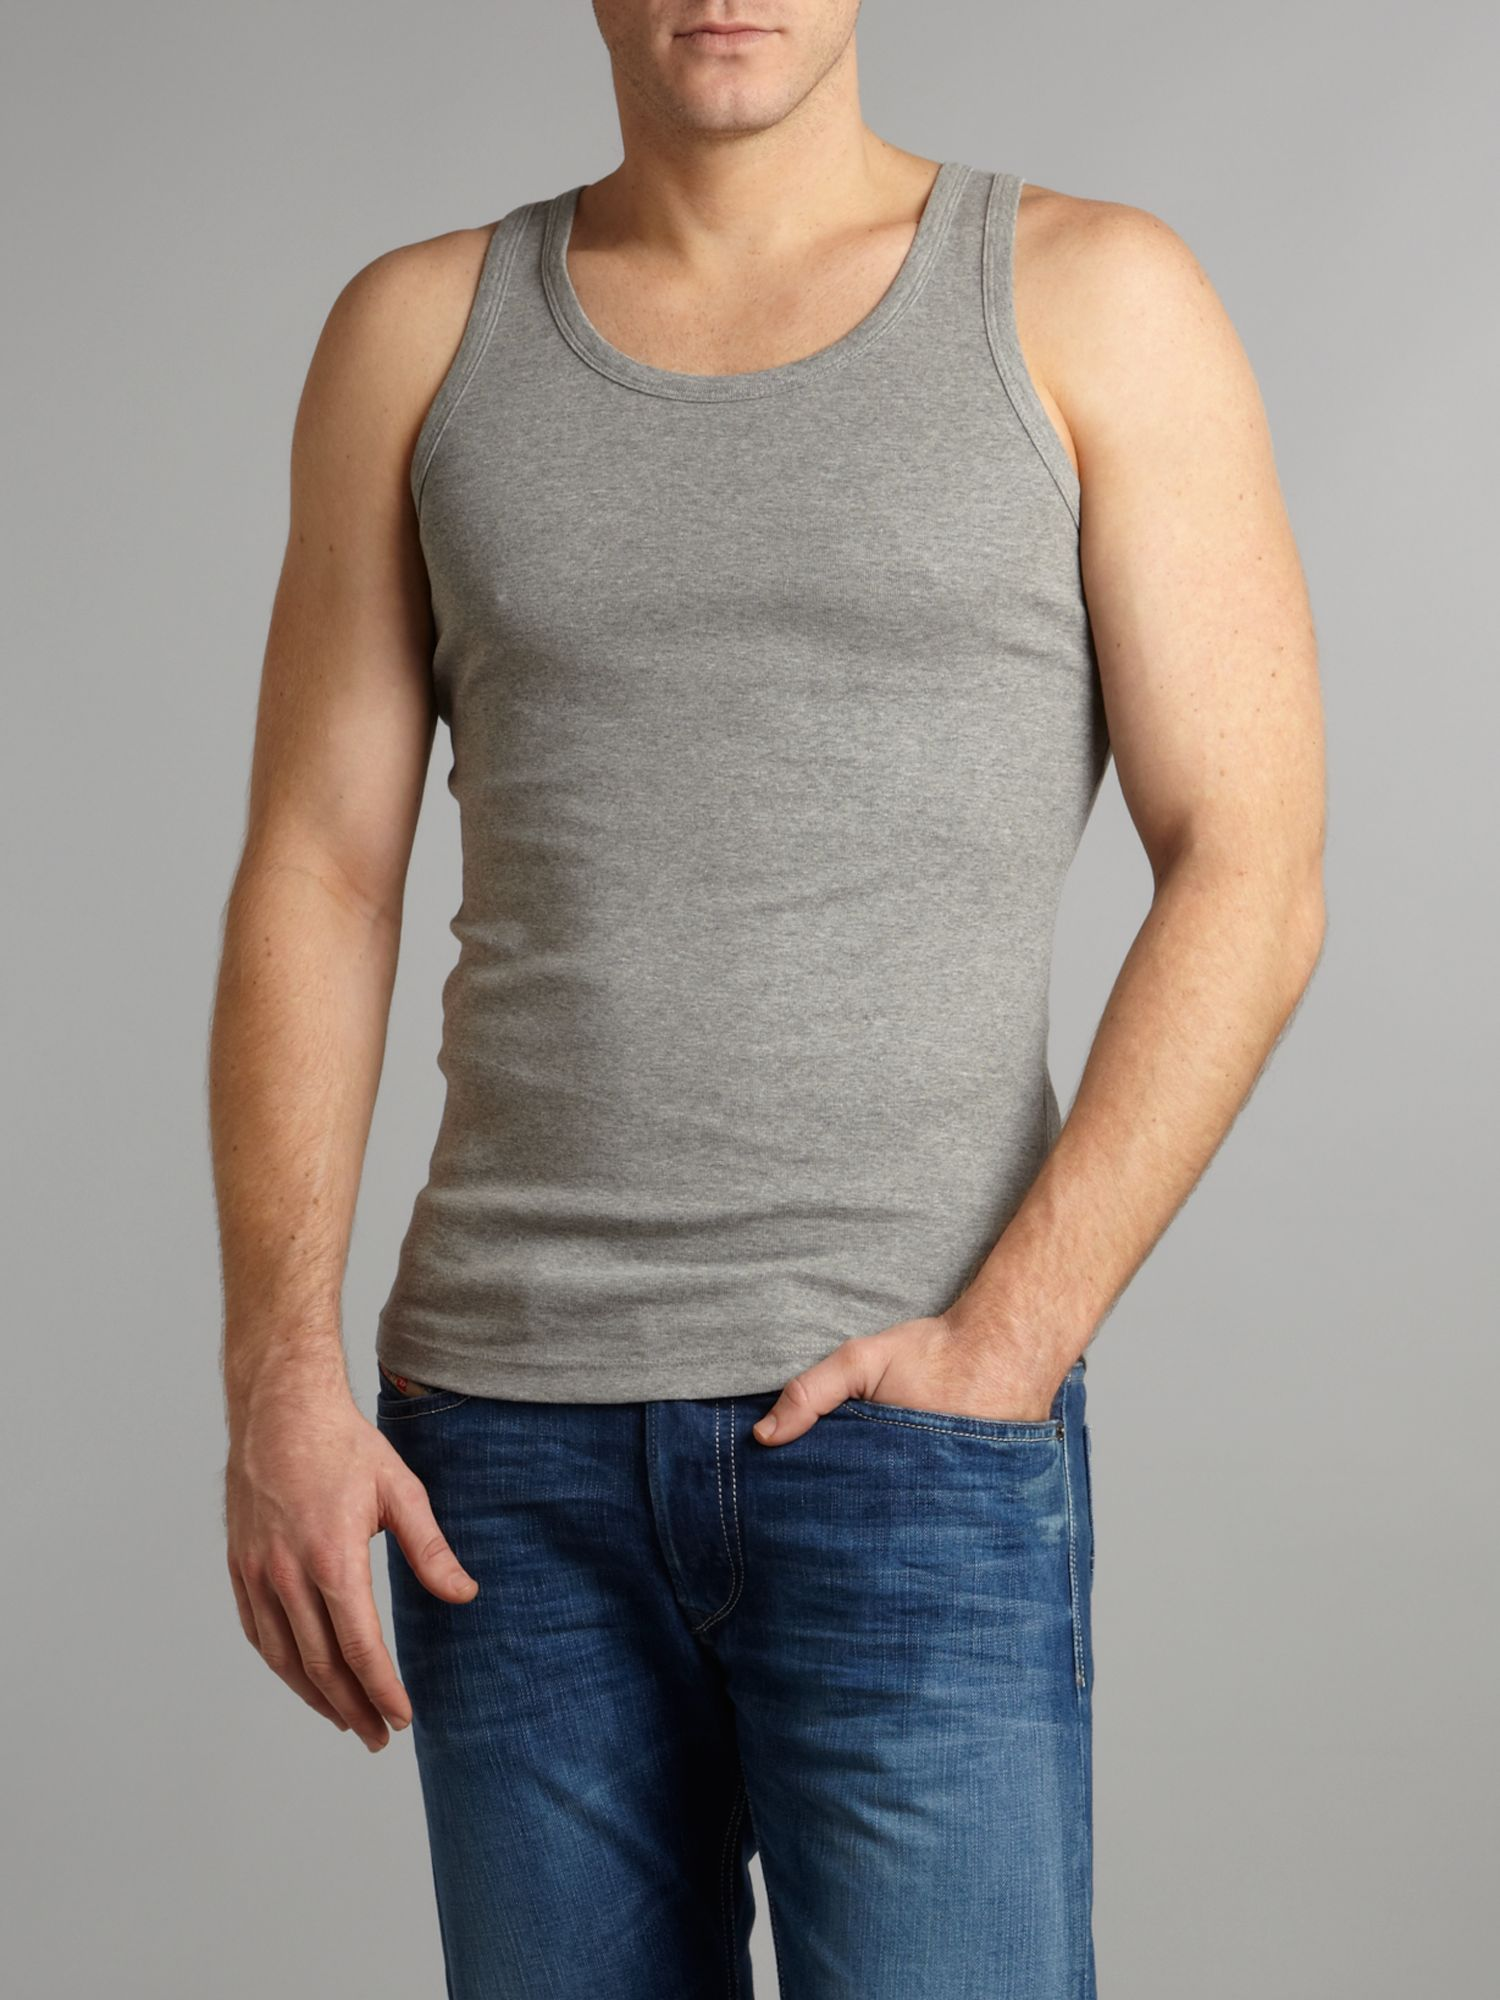 Sleeveless plain tank top